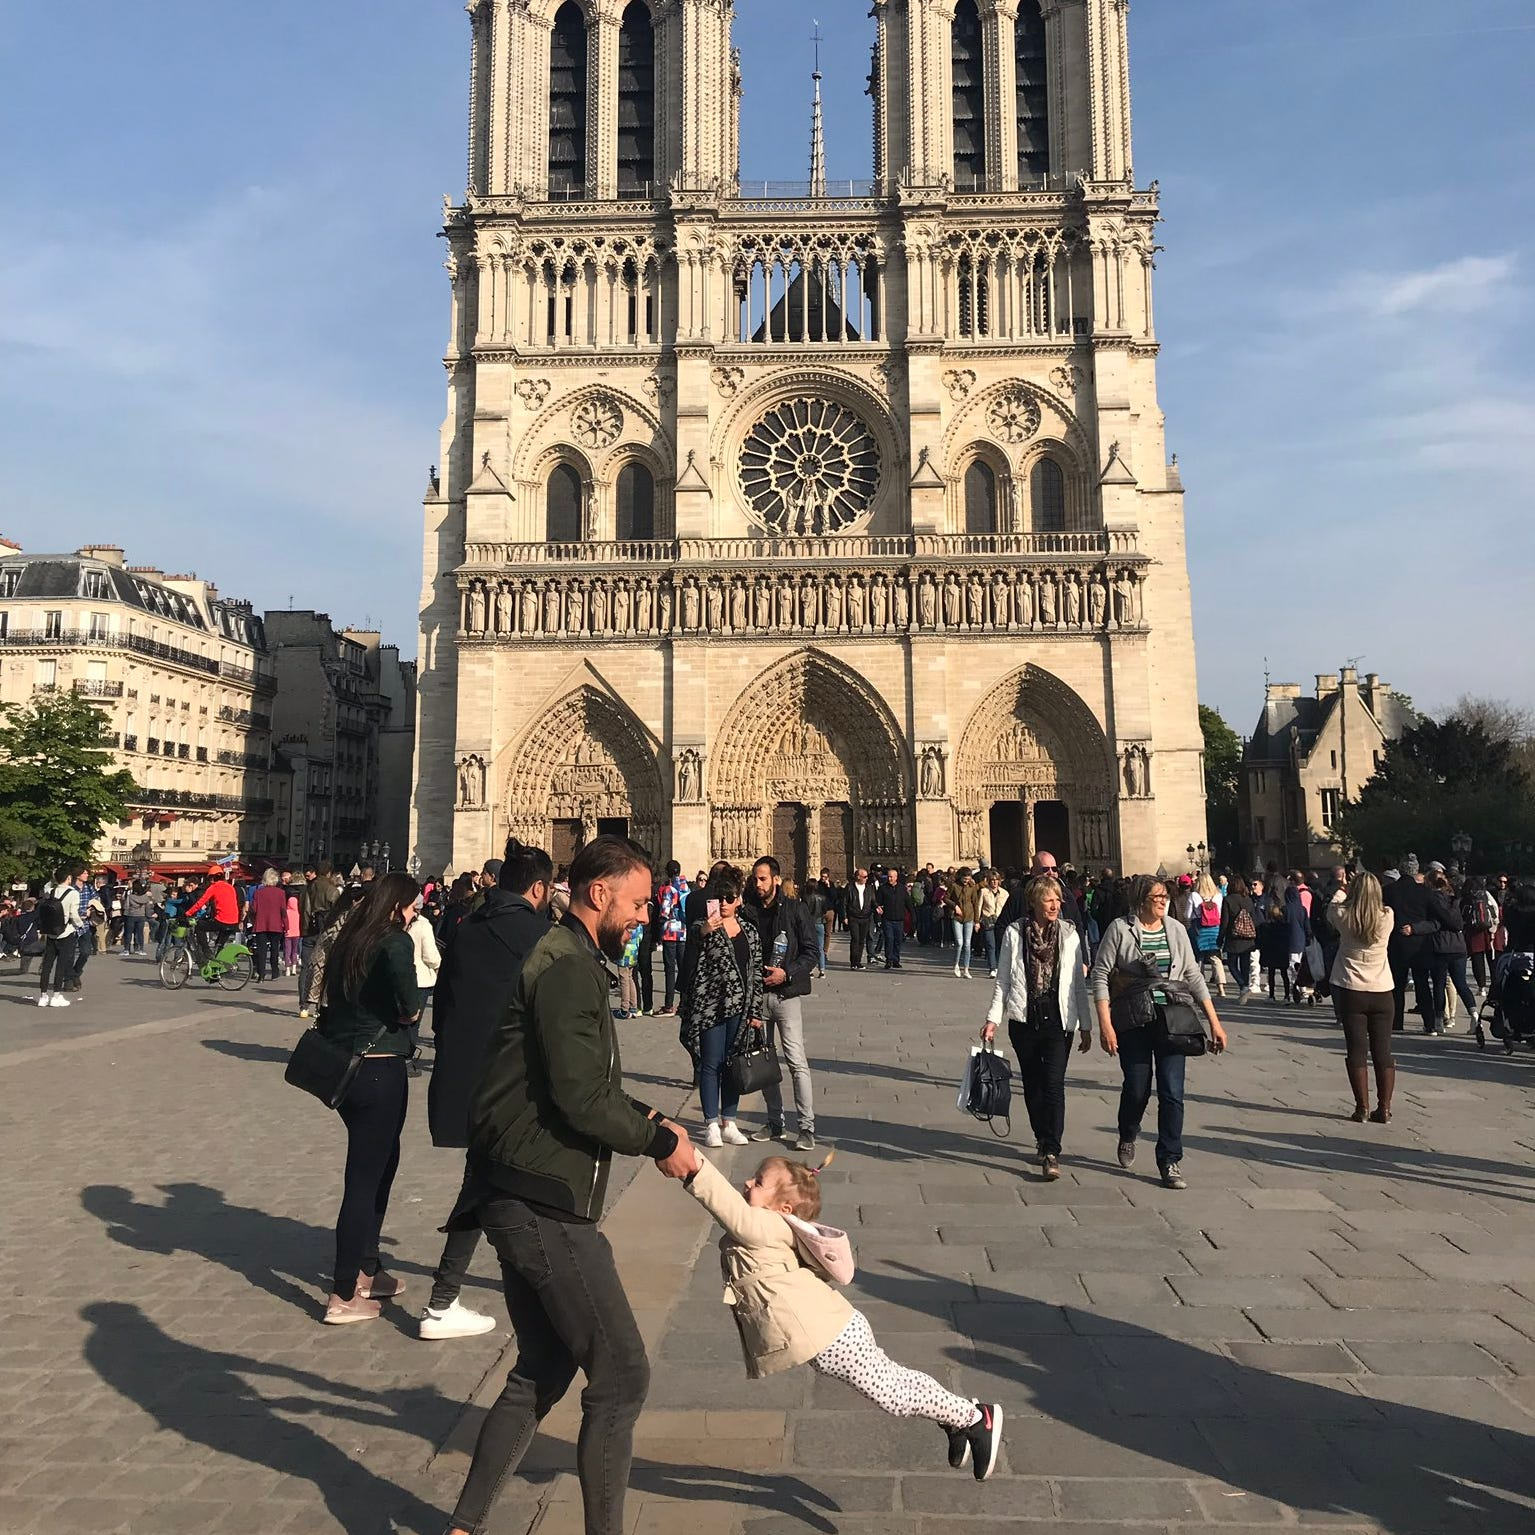 Michigan woman snapped photo of mystery man, child just before Notre Dame fire